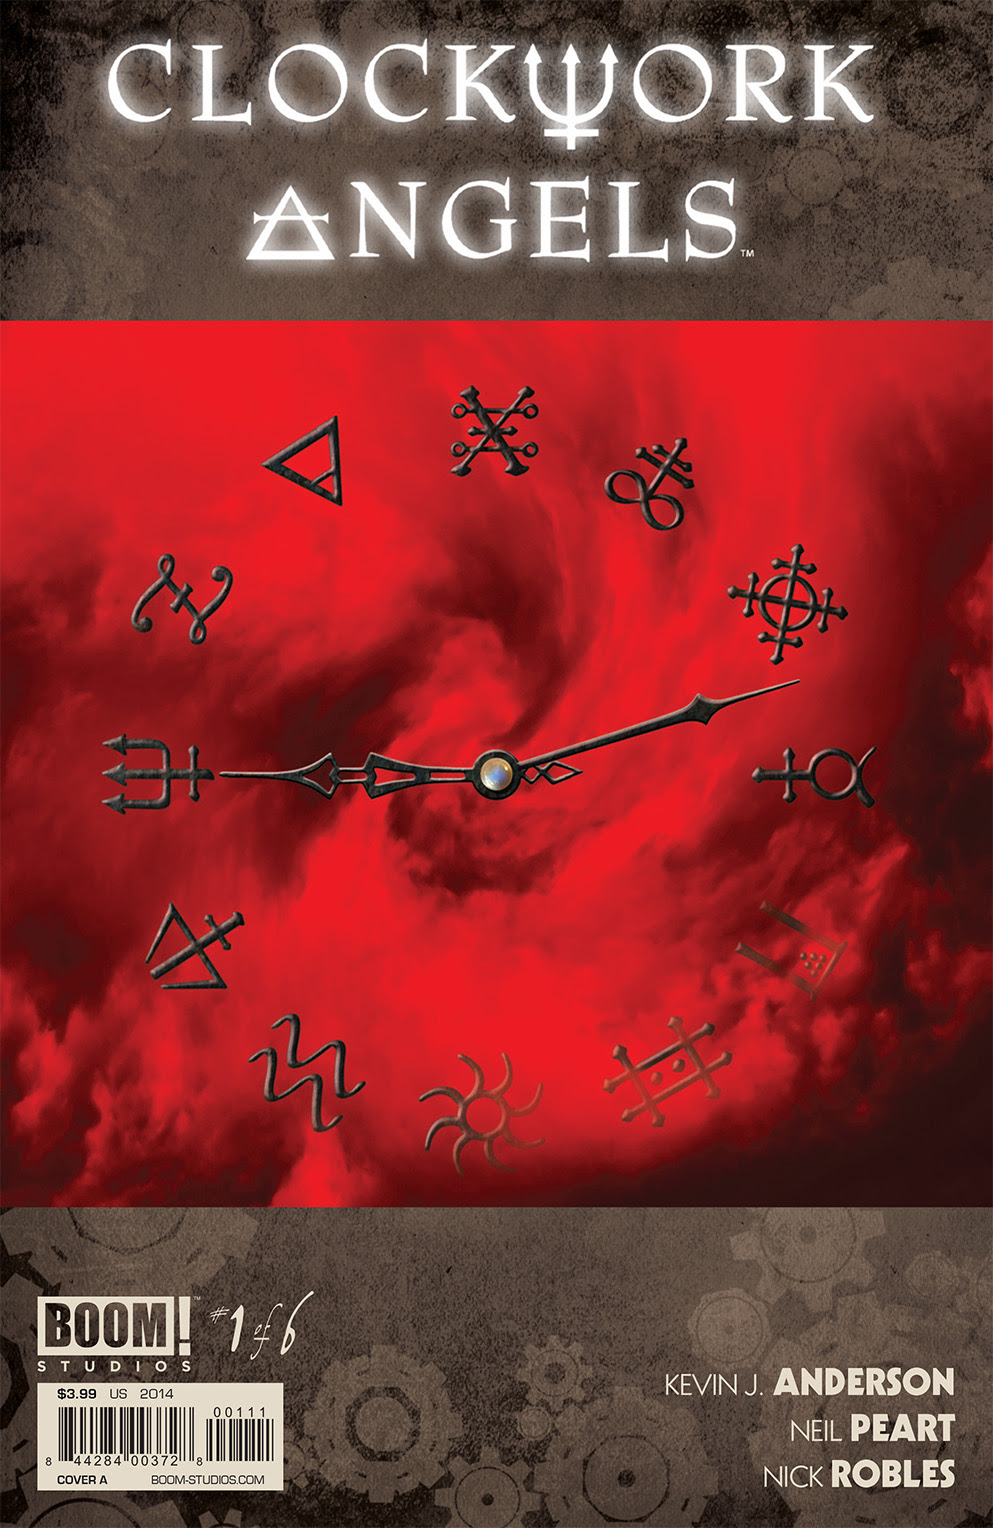 Clockwork Angels A